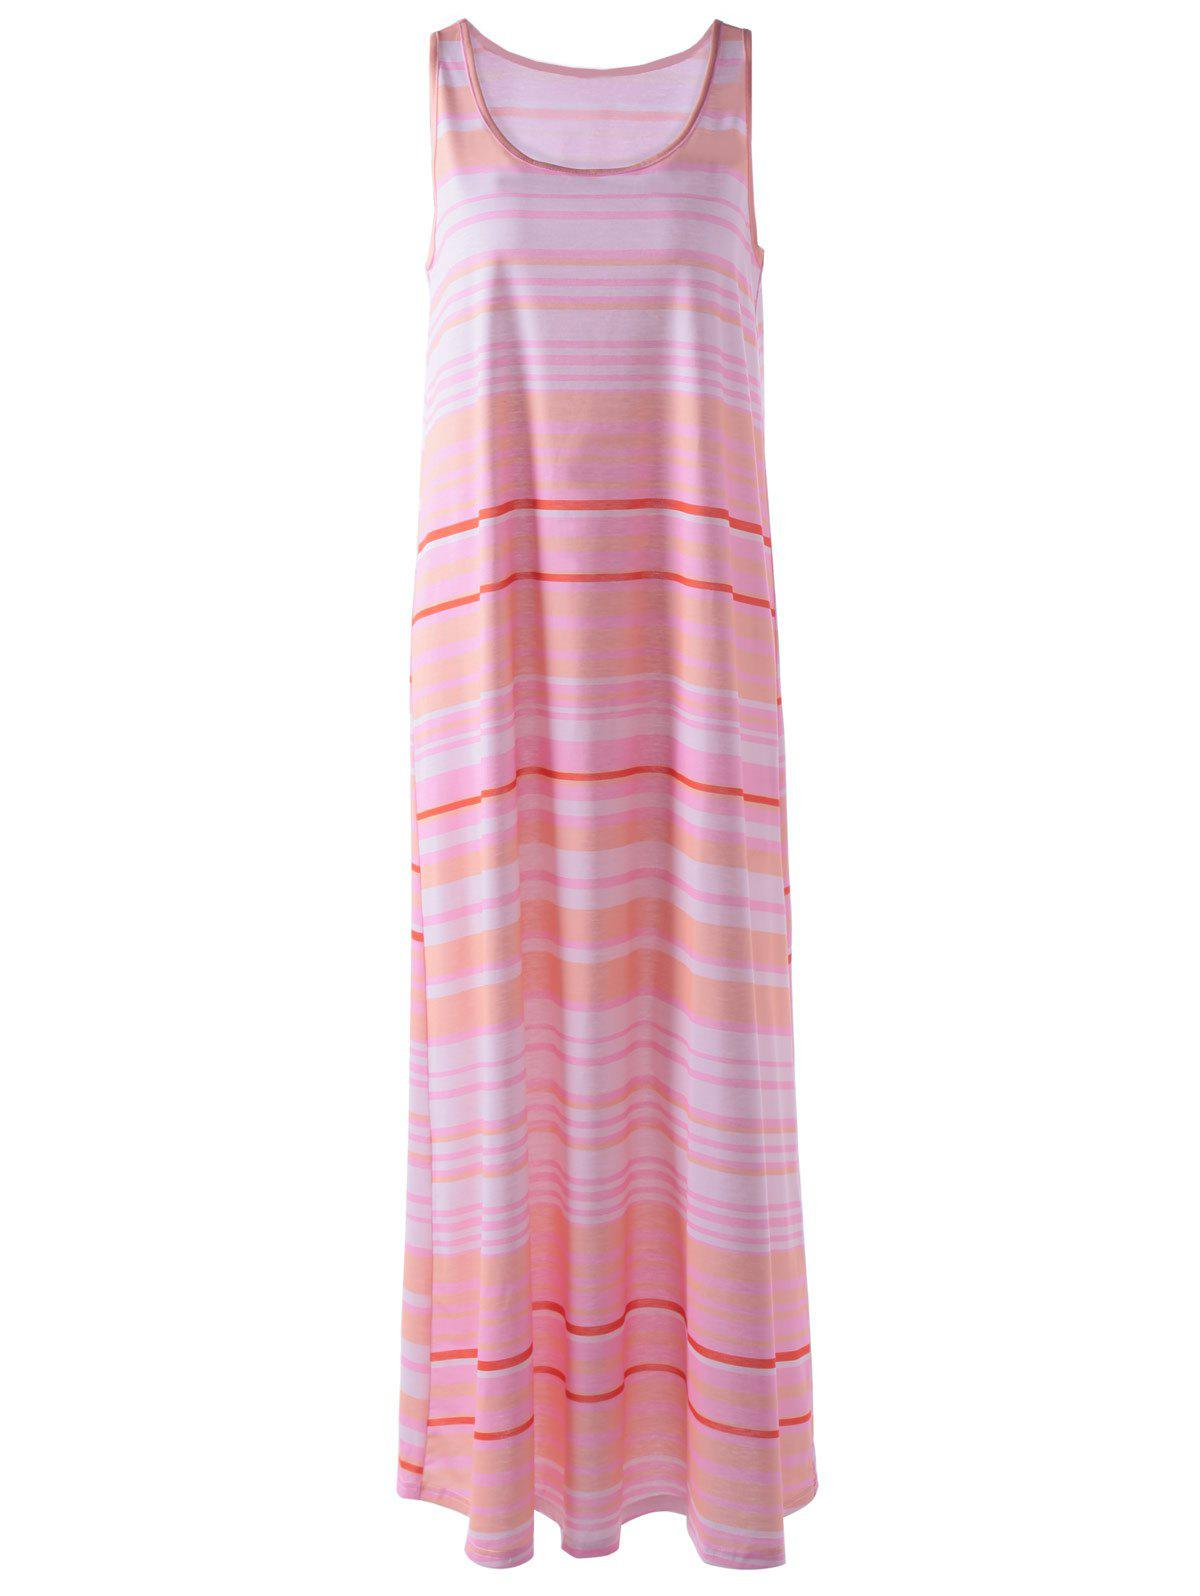 Fashionable Women's Round Neck Sleeveless Stripe Print Long Dress - LIGHT PINK L